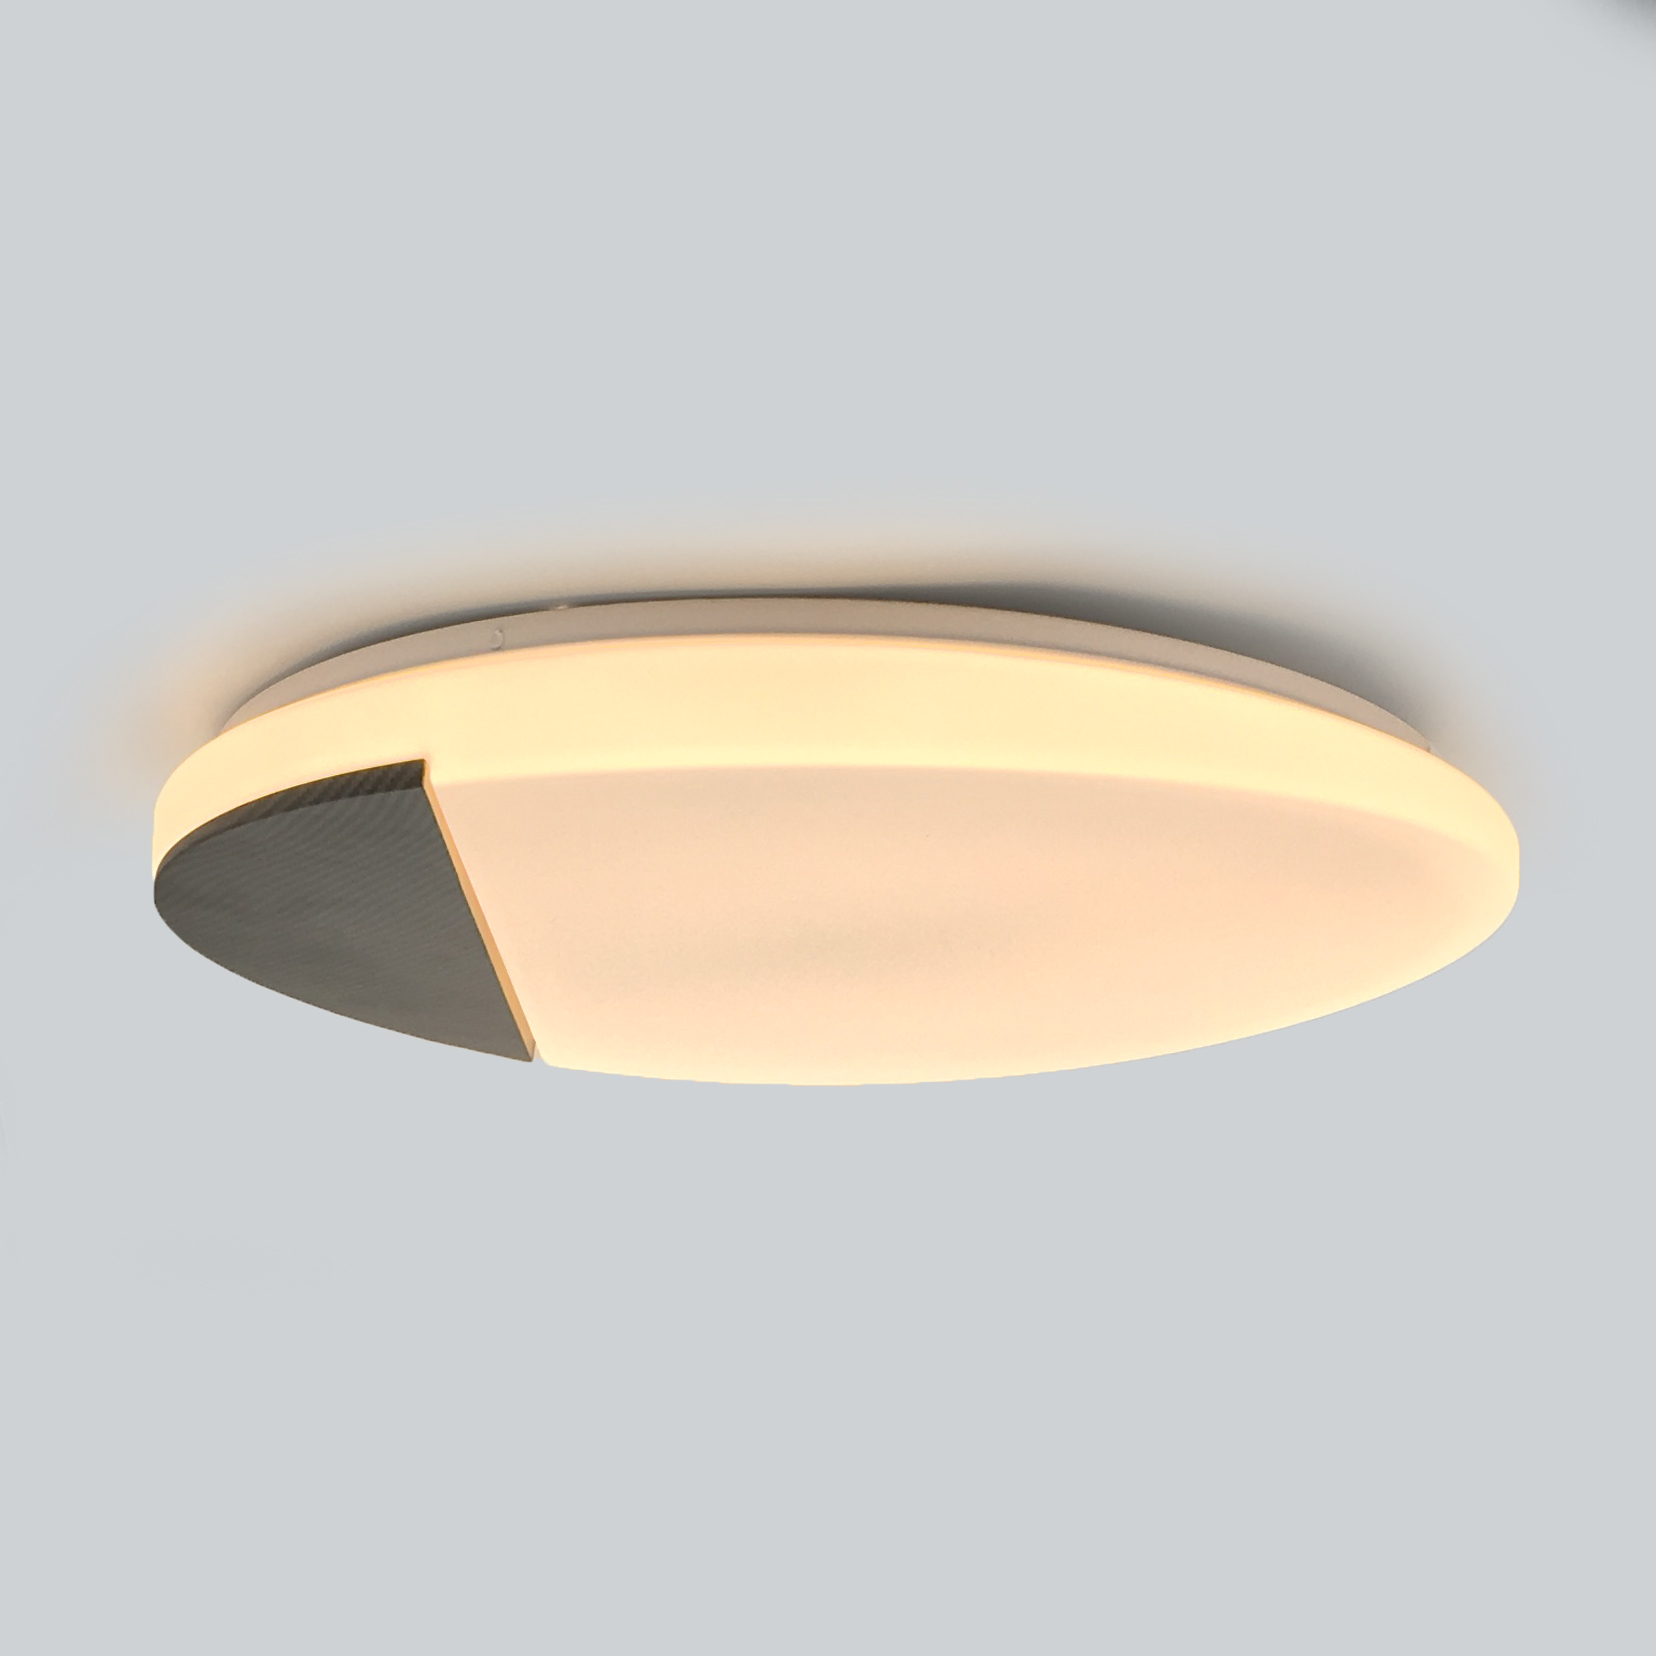 New model 2019 fancy decrative led ceiing lights